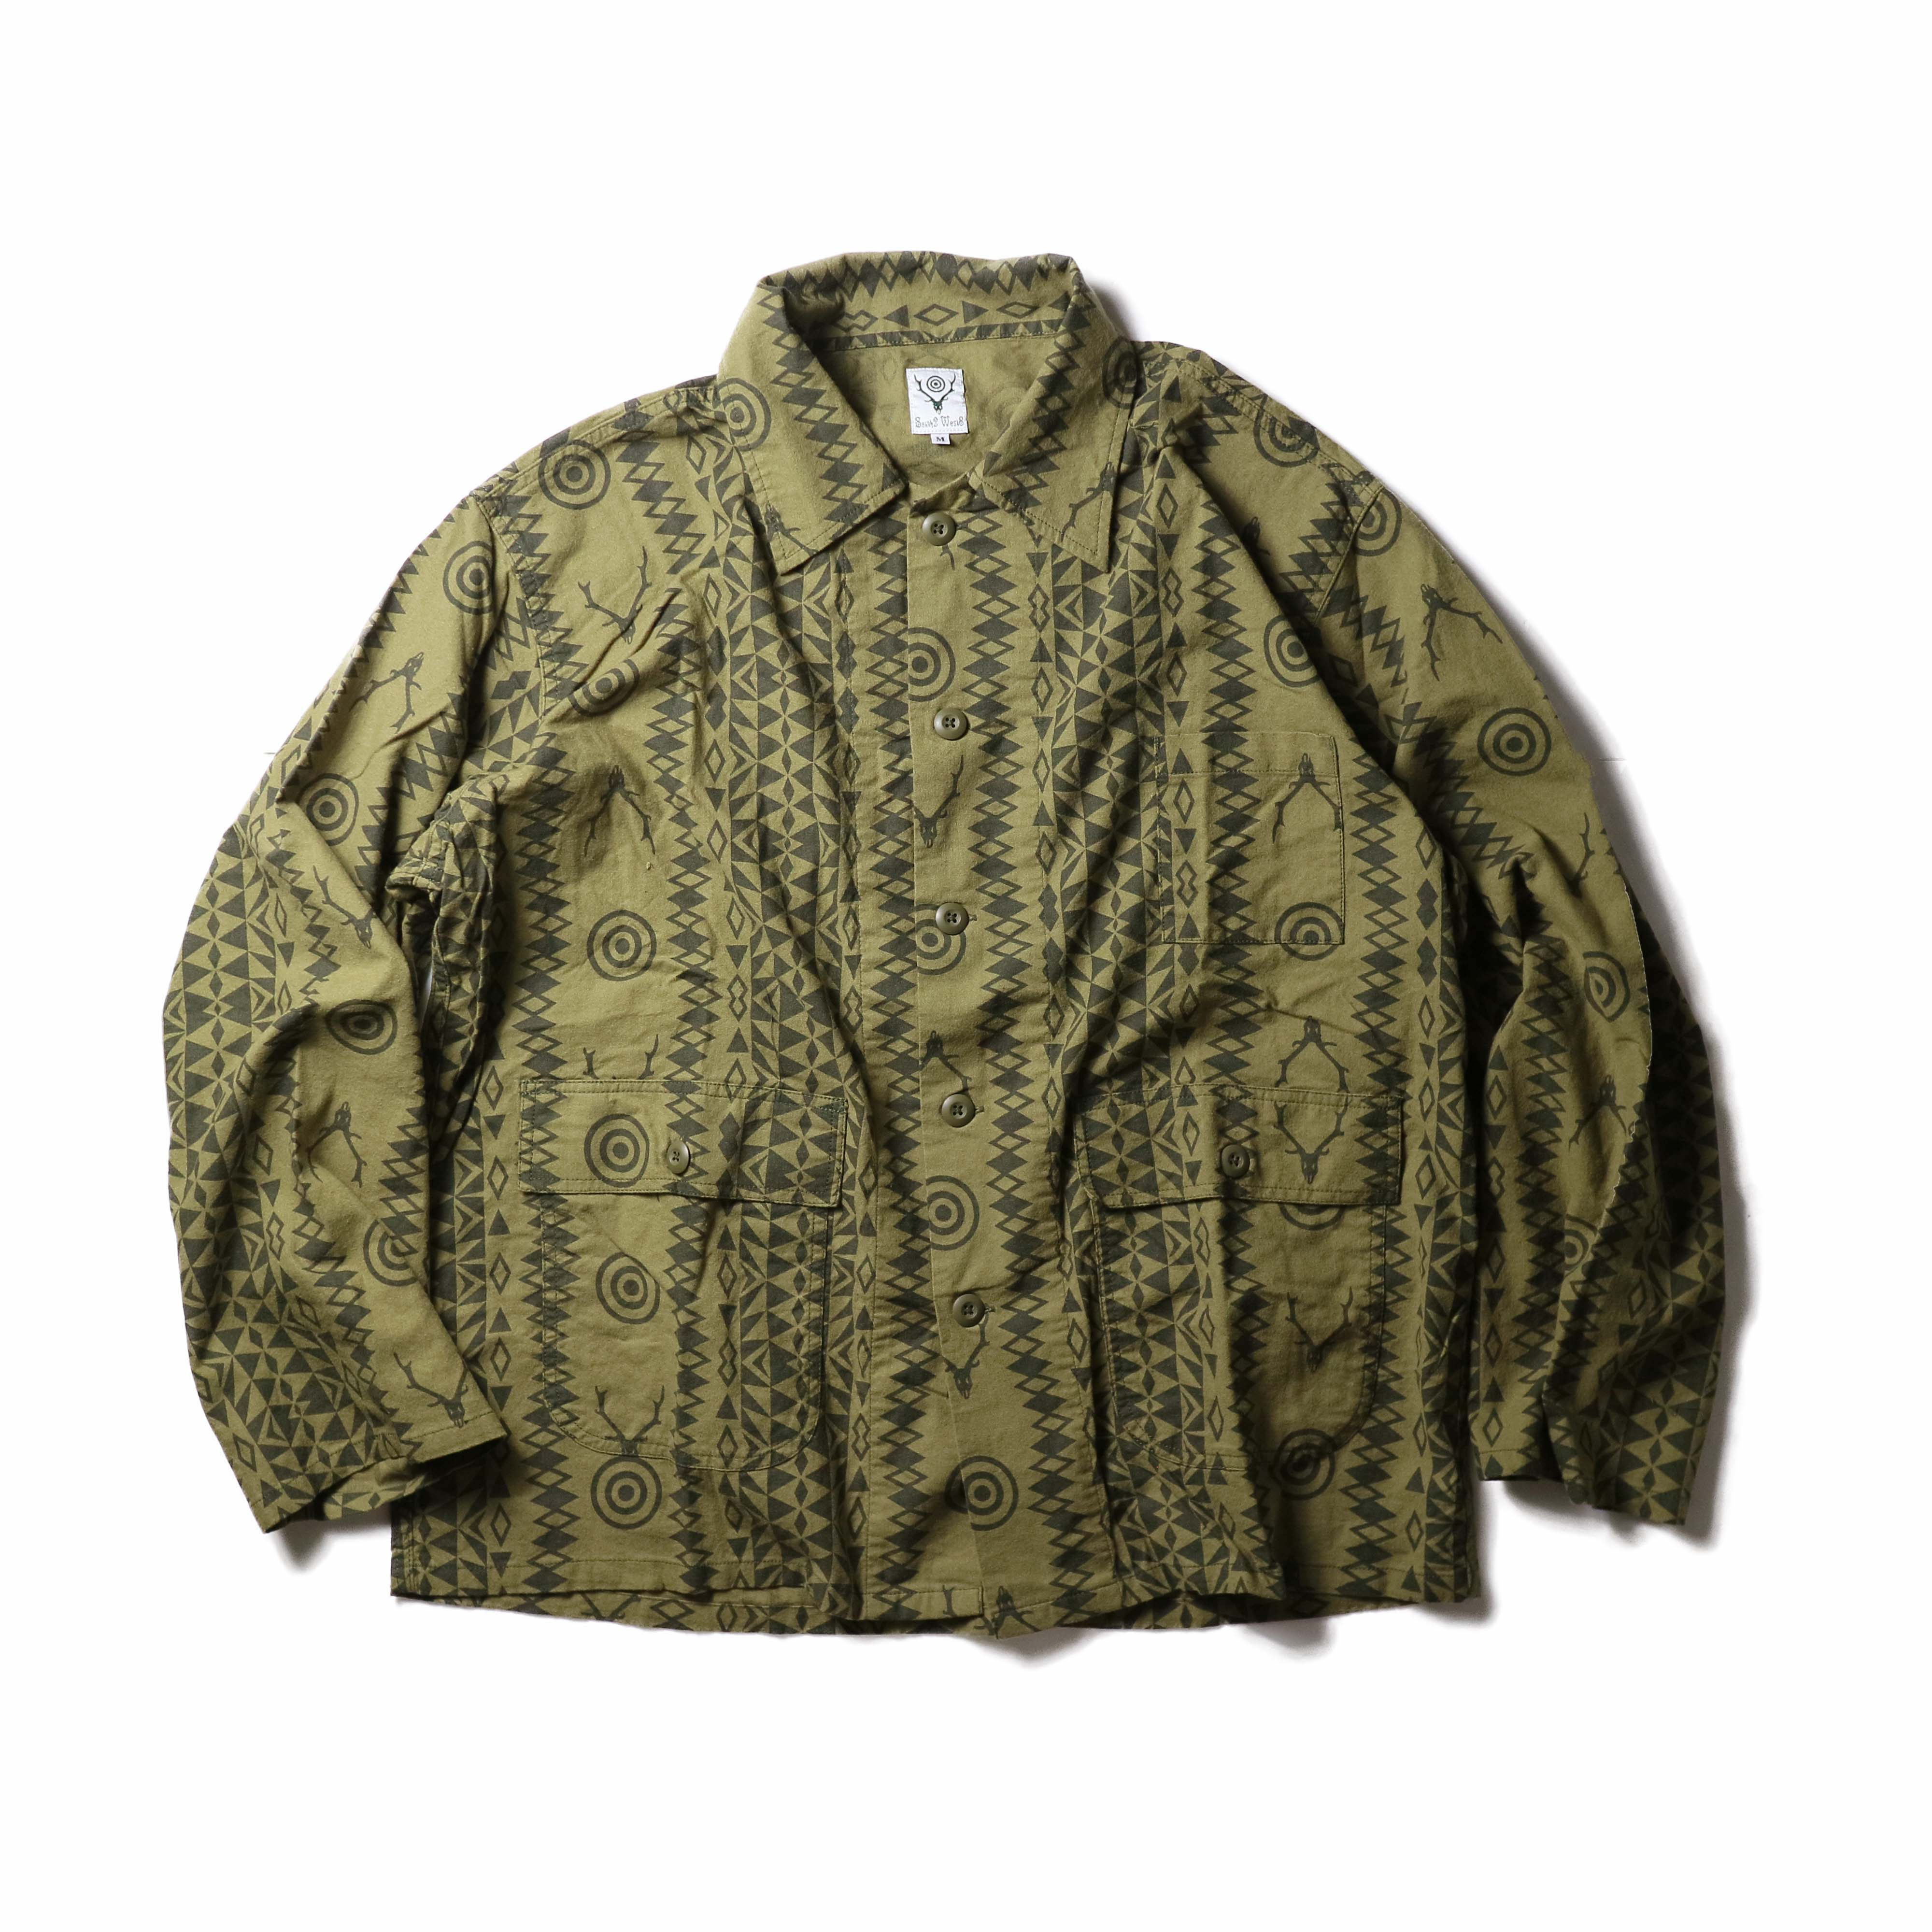 South2 West8 / Hunting Shirt -Flannel Pt. (Skull&Target)